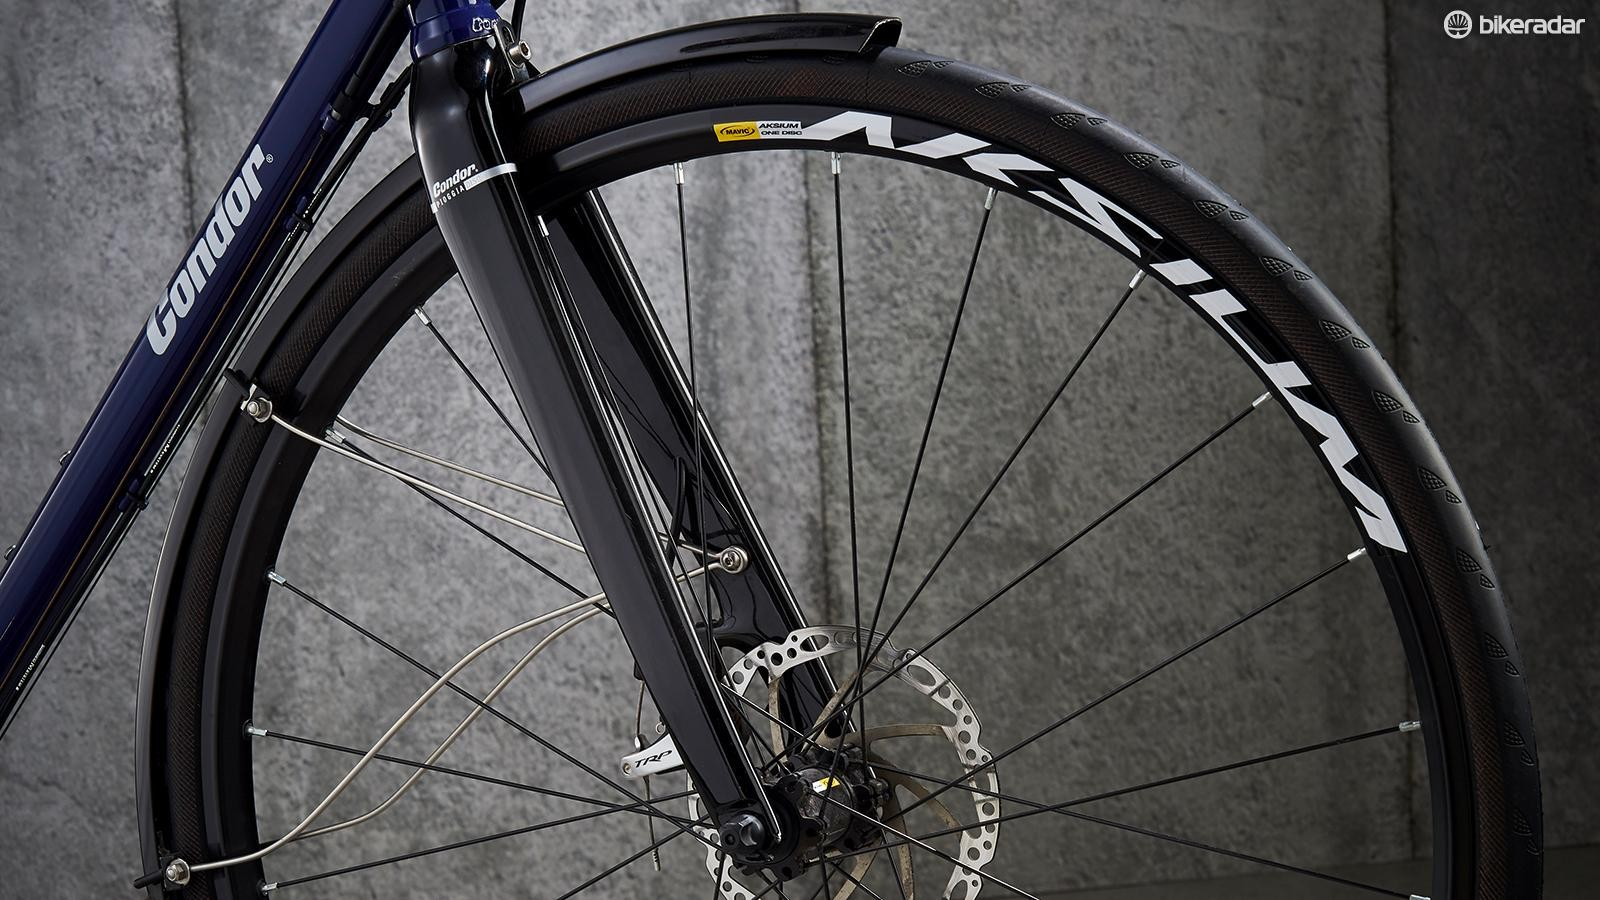 The Pioggia Disc fork is a blend of carbon blades and aluminium steerer